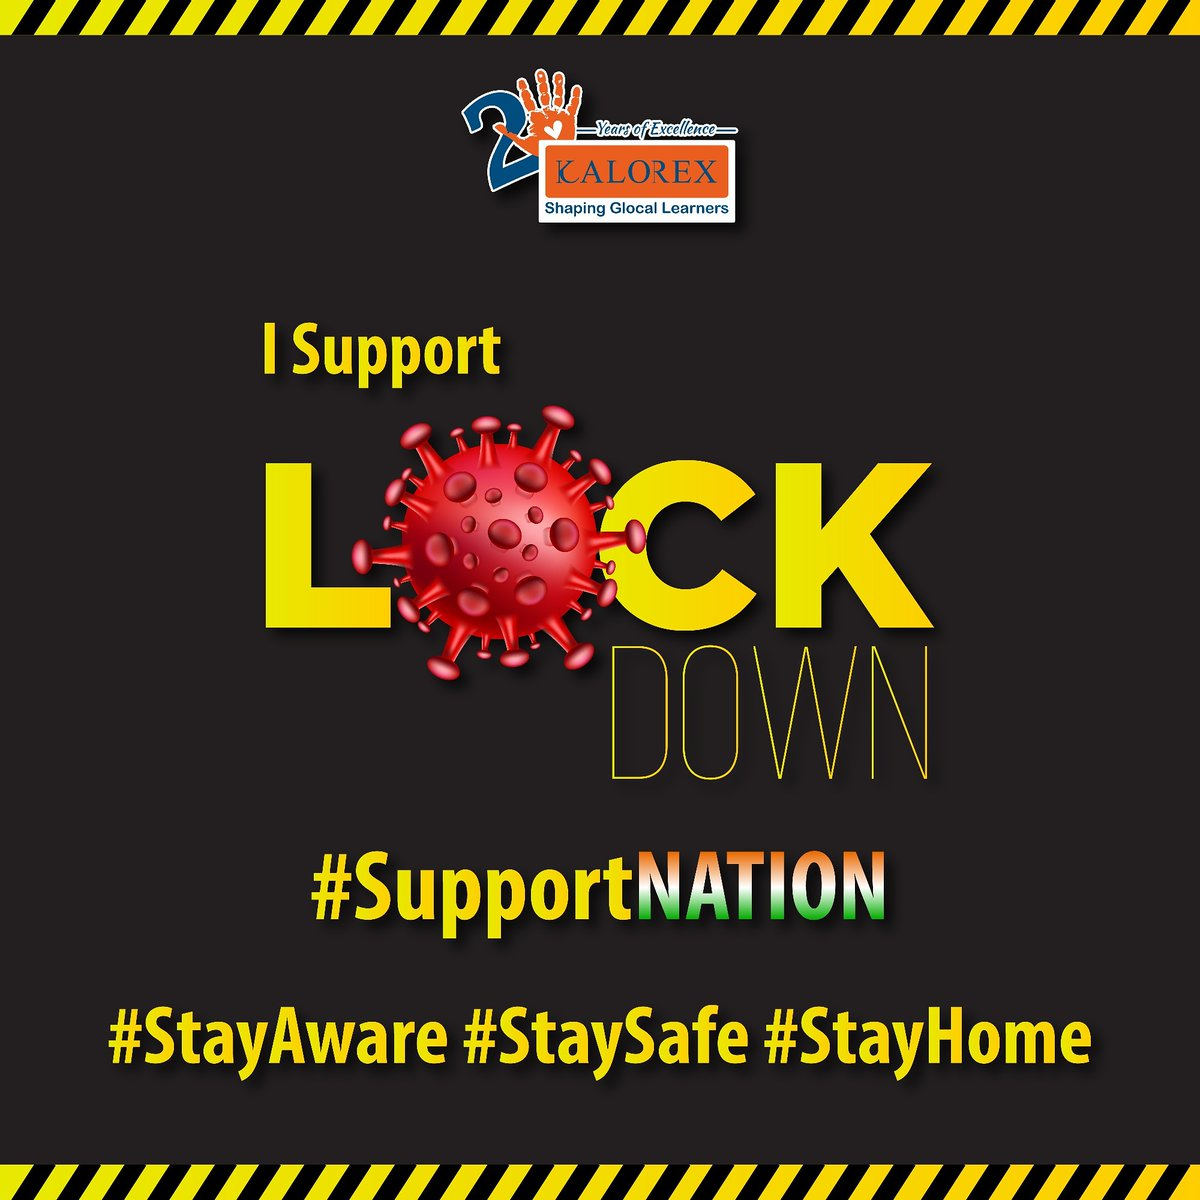 I Support #Lock down #Support Nation #Stay Aware #Stay Safe #Stay Home https://t.co/pL9IebGxOh